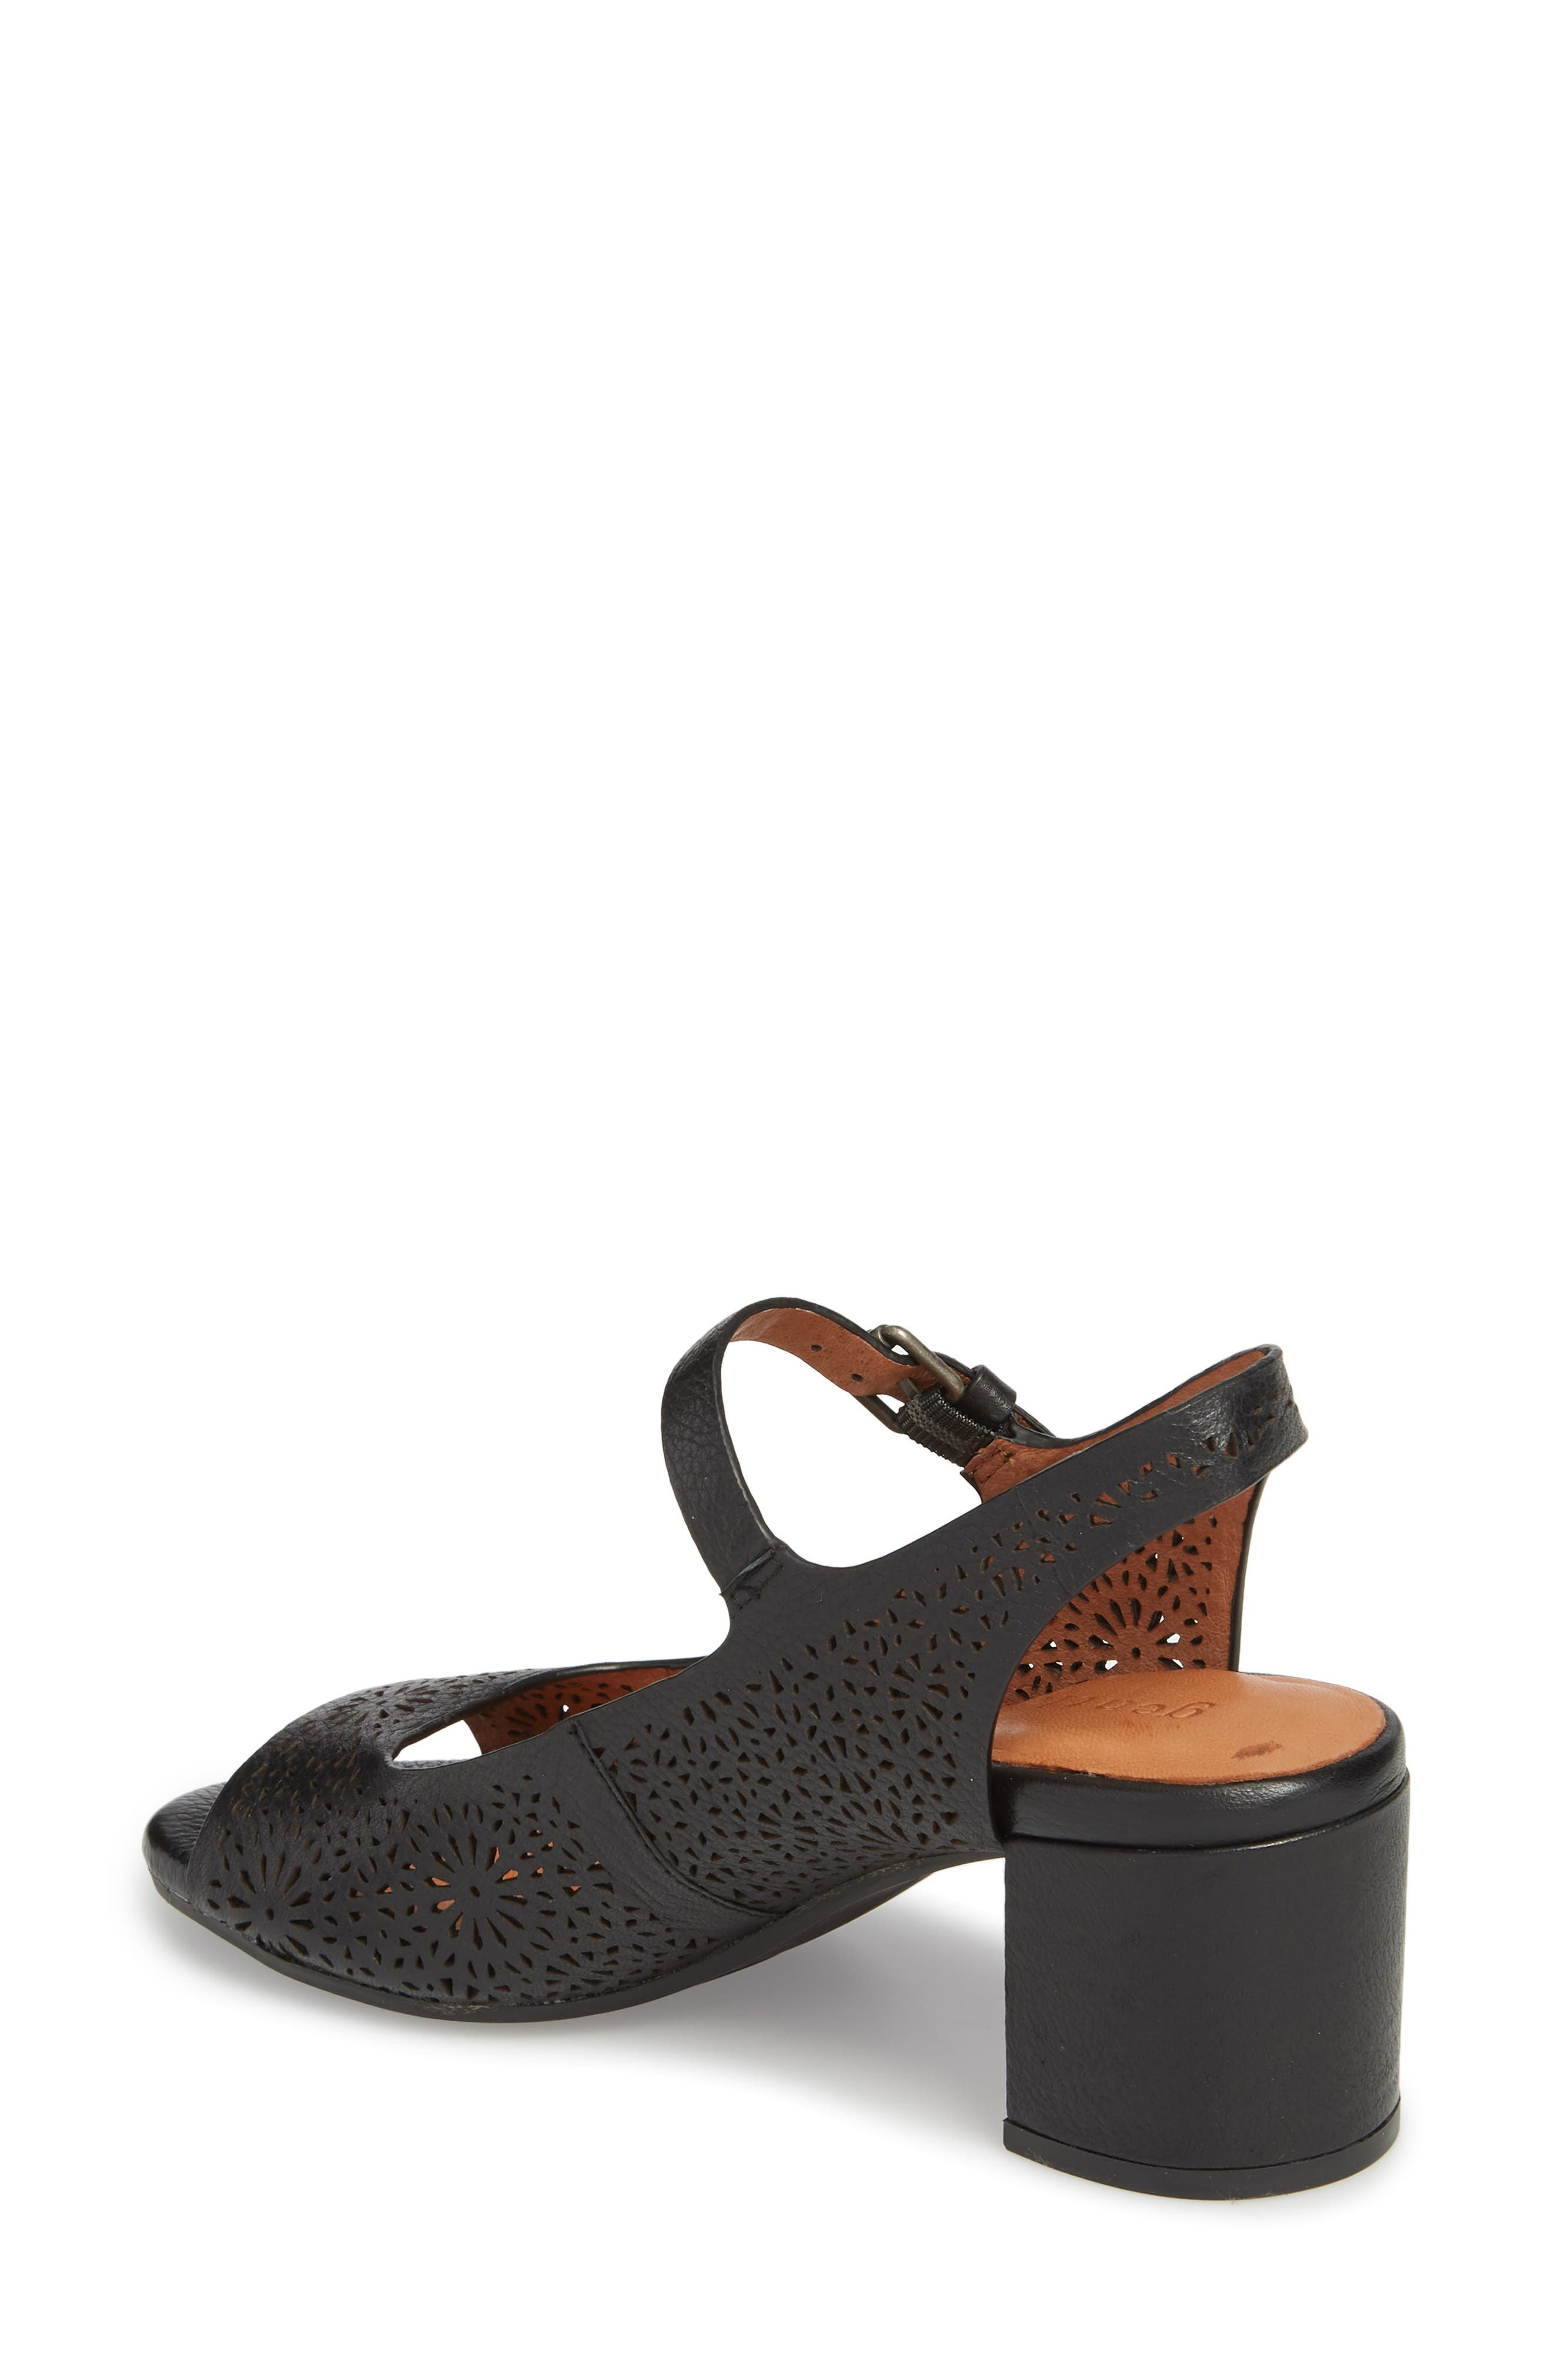 GENTLE SOULS BY KENNETH COLE, Cheryl 2 Sandal, Alternate thumbnail 2, color, BLACK LEATHER